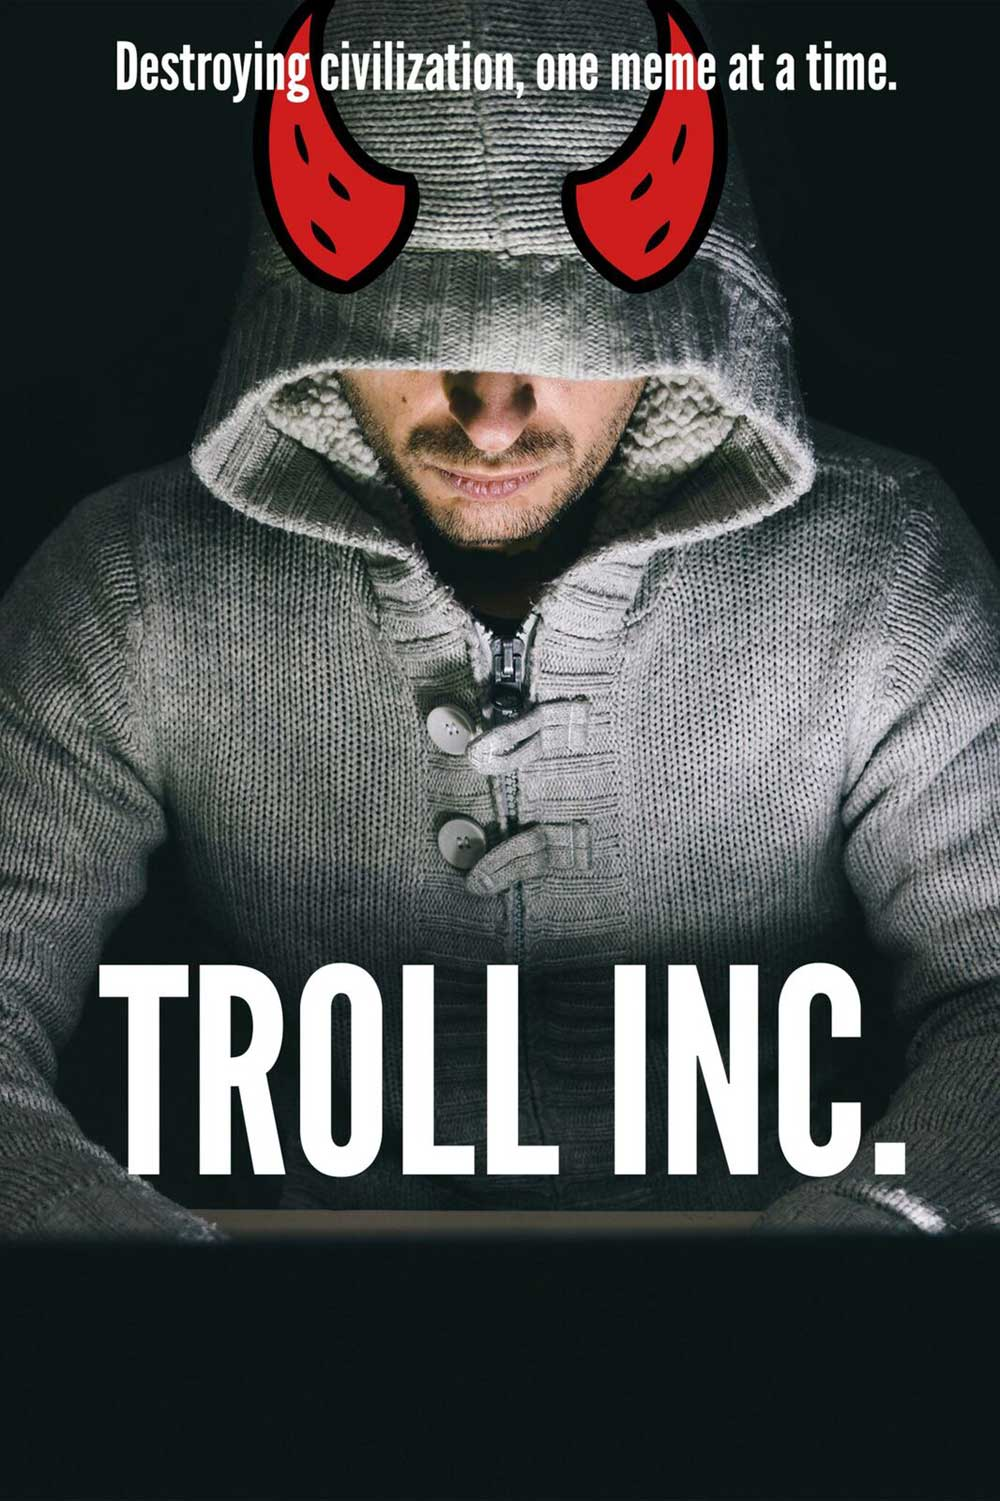 Troll Inc. YBLTV Film Review by Patrick Mackey.